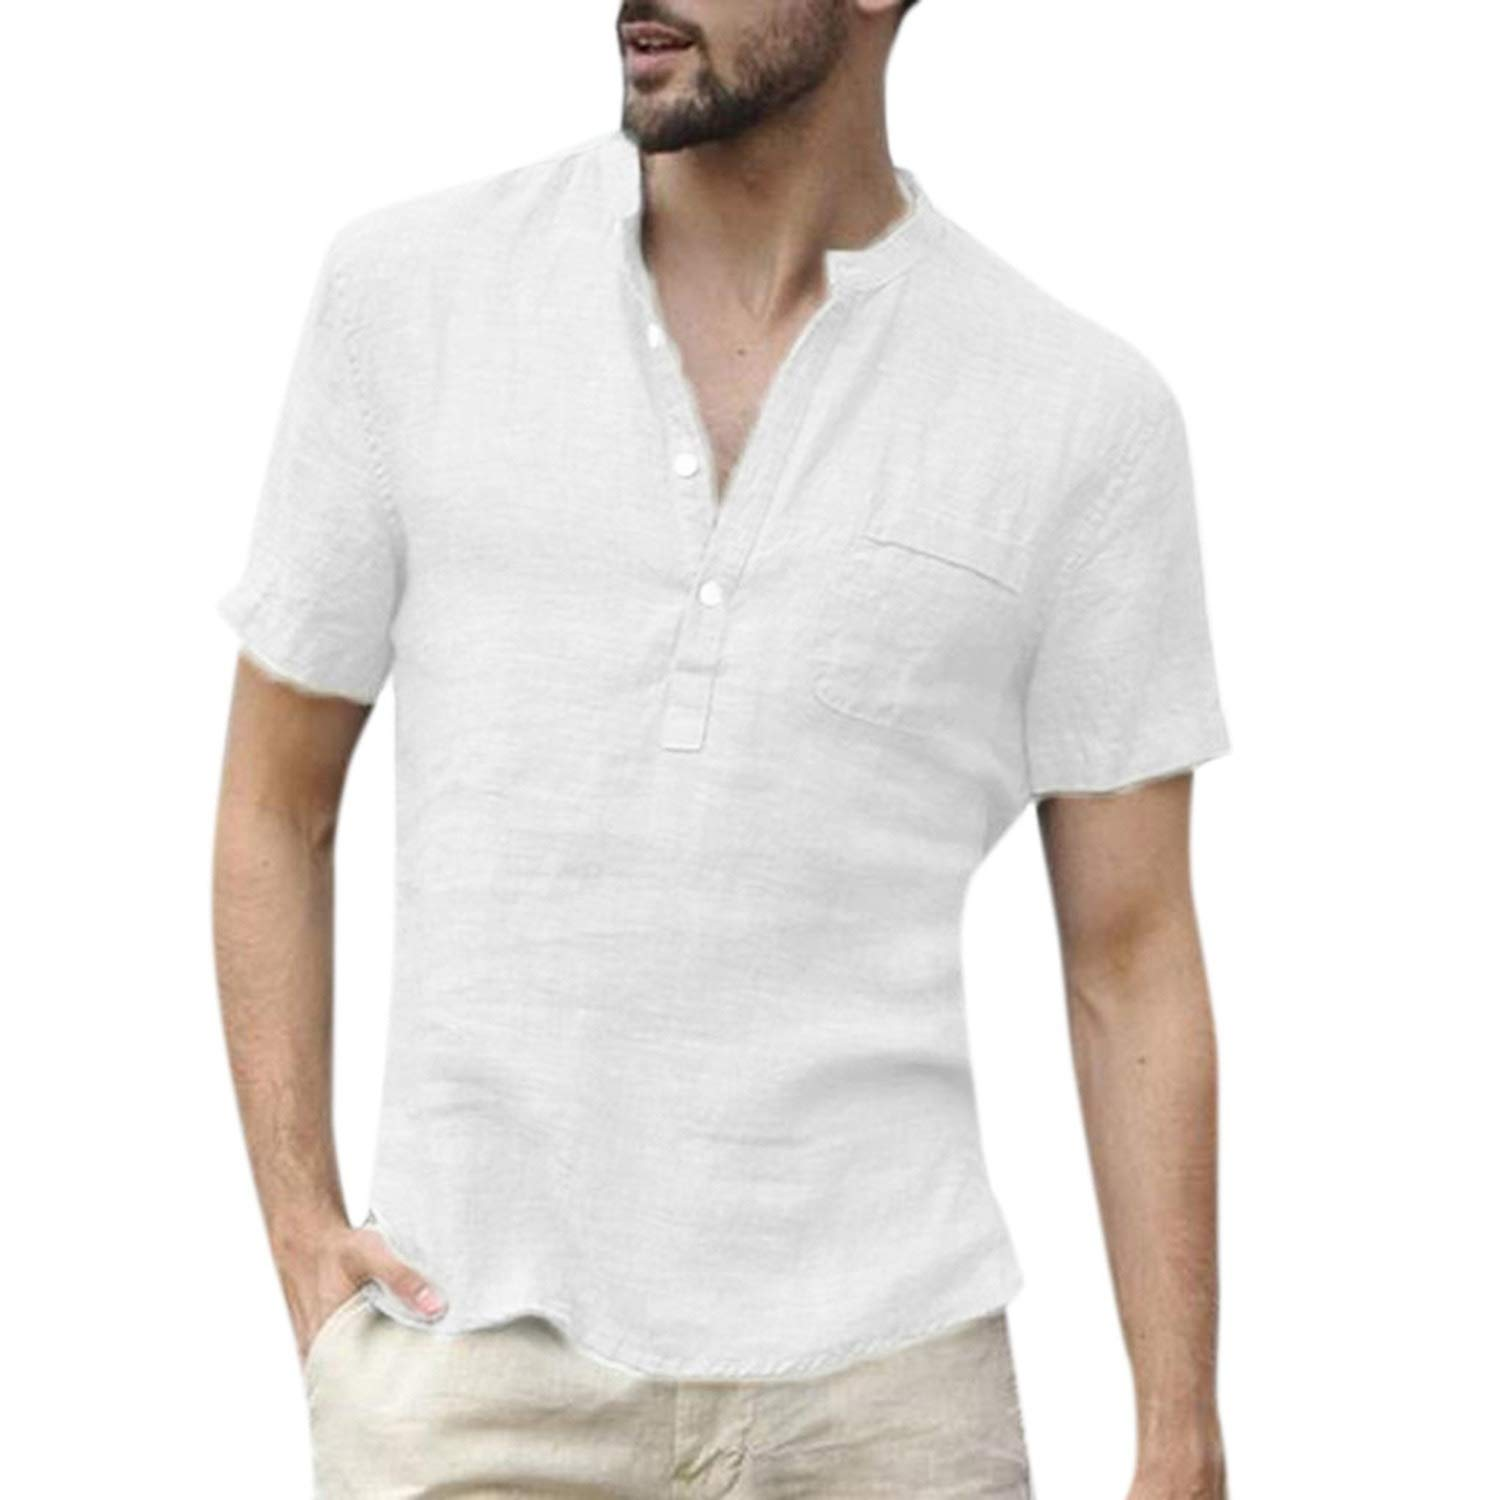 Shirt Men Summer Short-Sleeved Baggy Cotton Linen Solid Button Beach Shirts